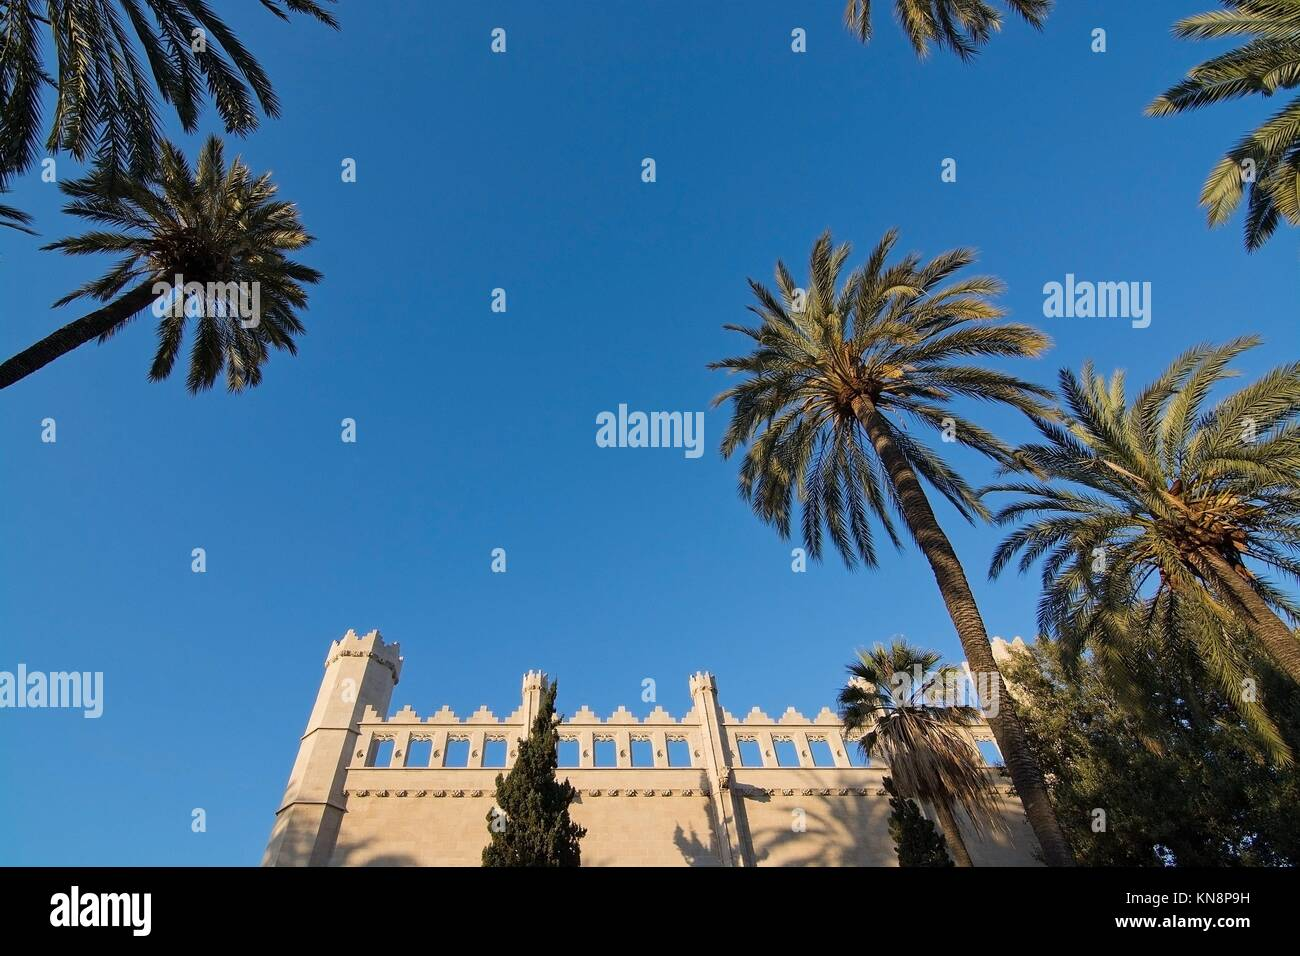 La Llotja medieval building, palm trees and blue sky in Palma de Mallorca, Balearic islands, Spain Stock Photo